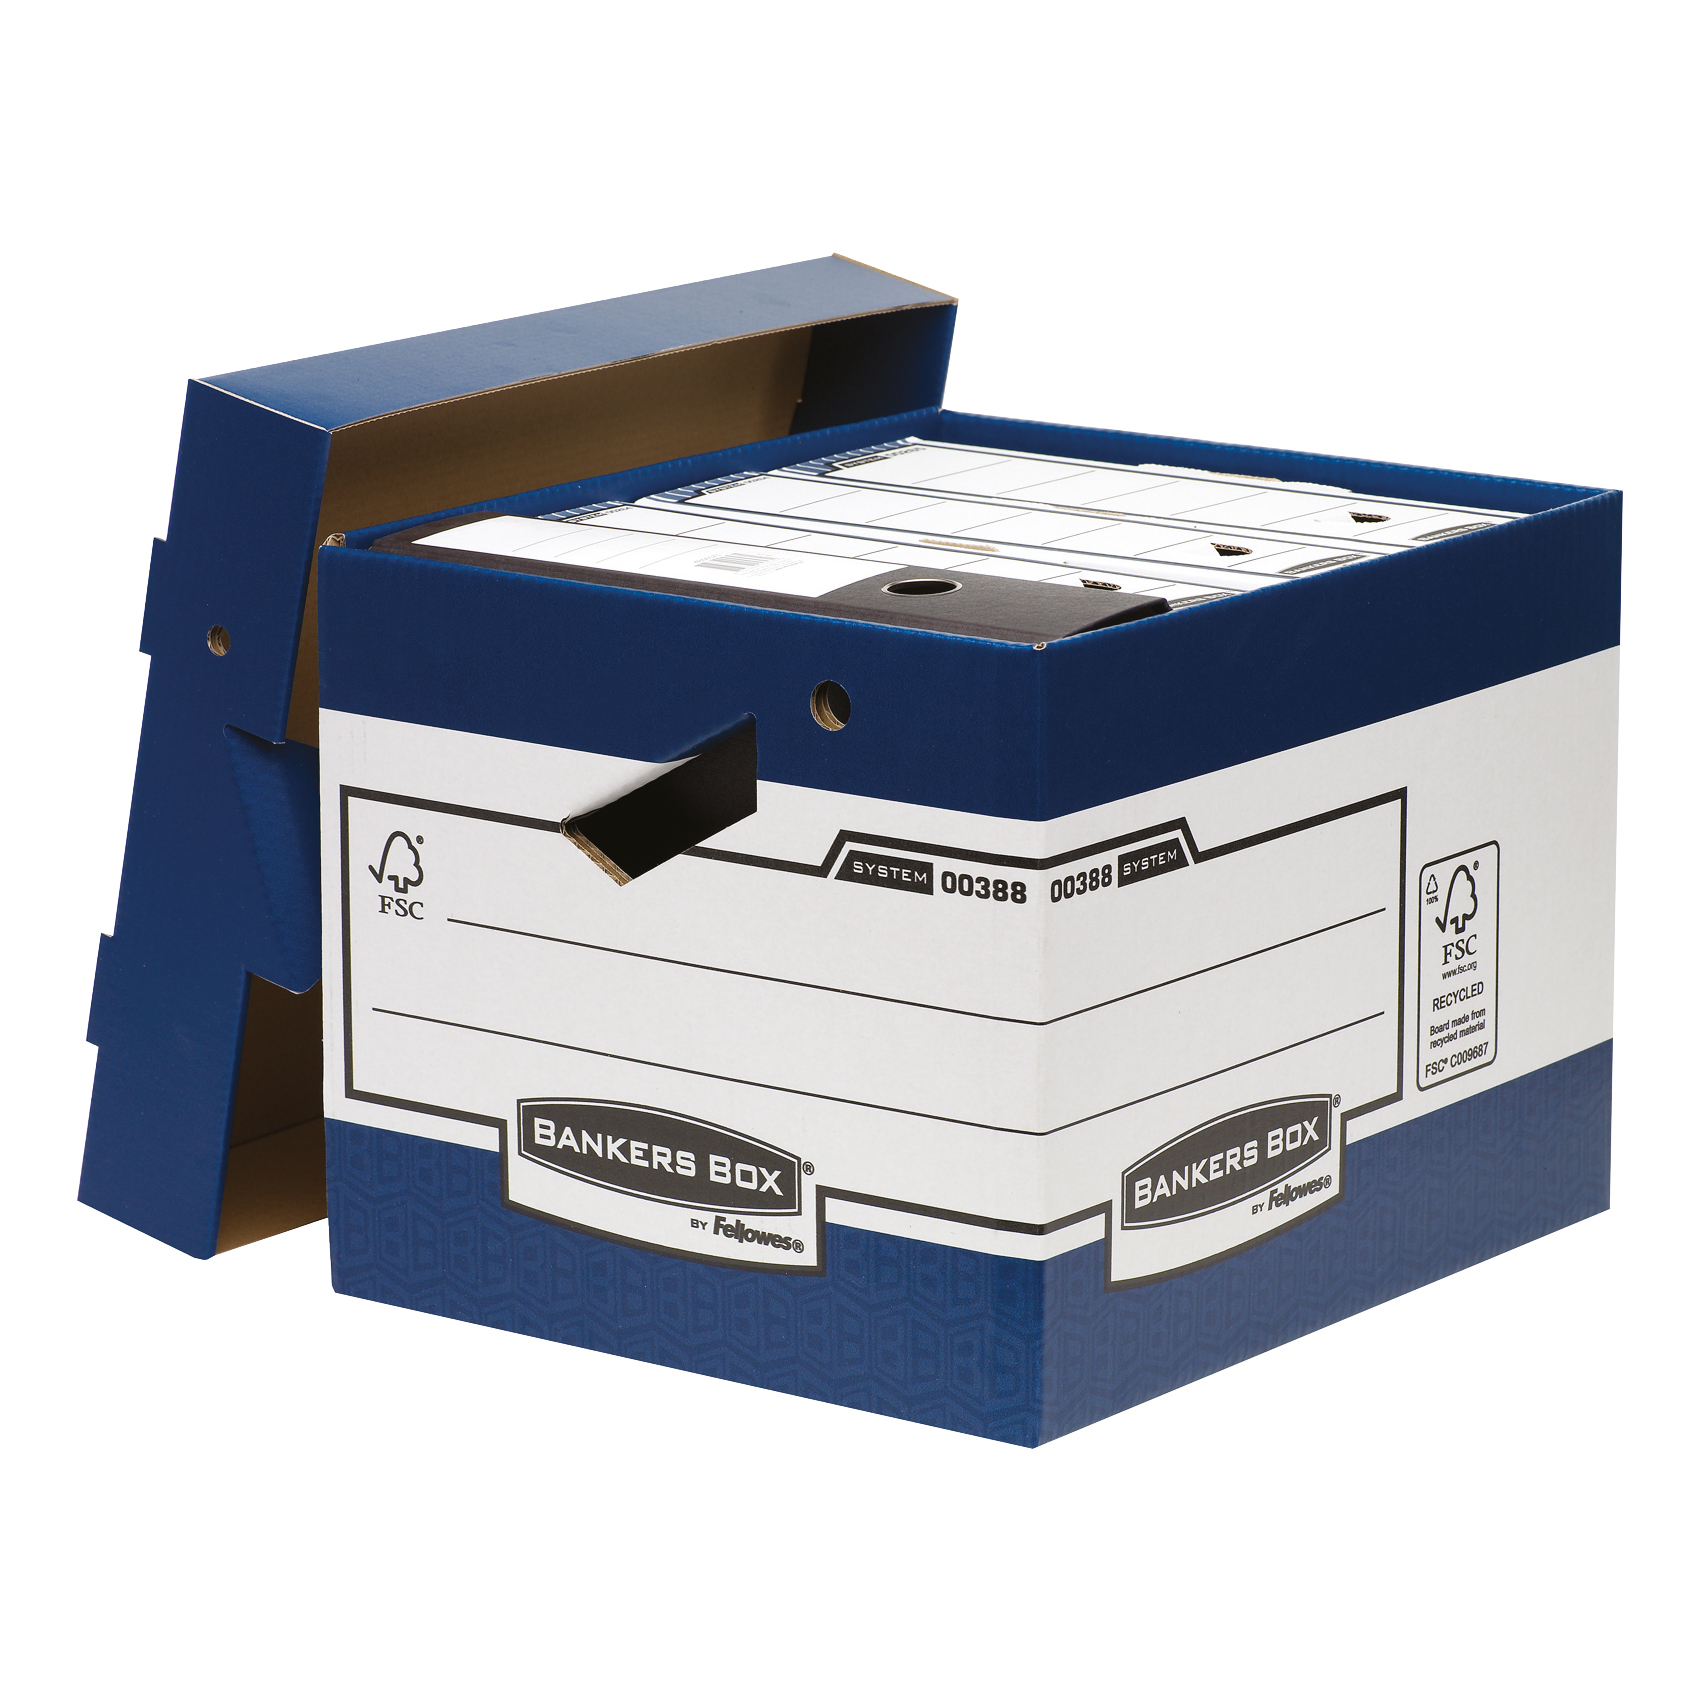 Bankers Box by Fellowes Ergo Stor Heavy Duty FastFold FSC Ref 38801 Pack 10